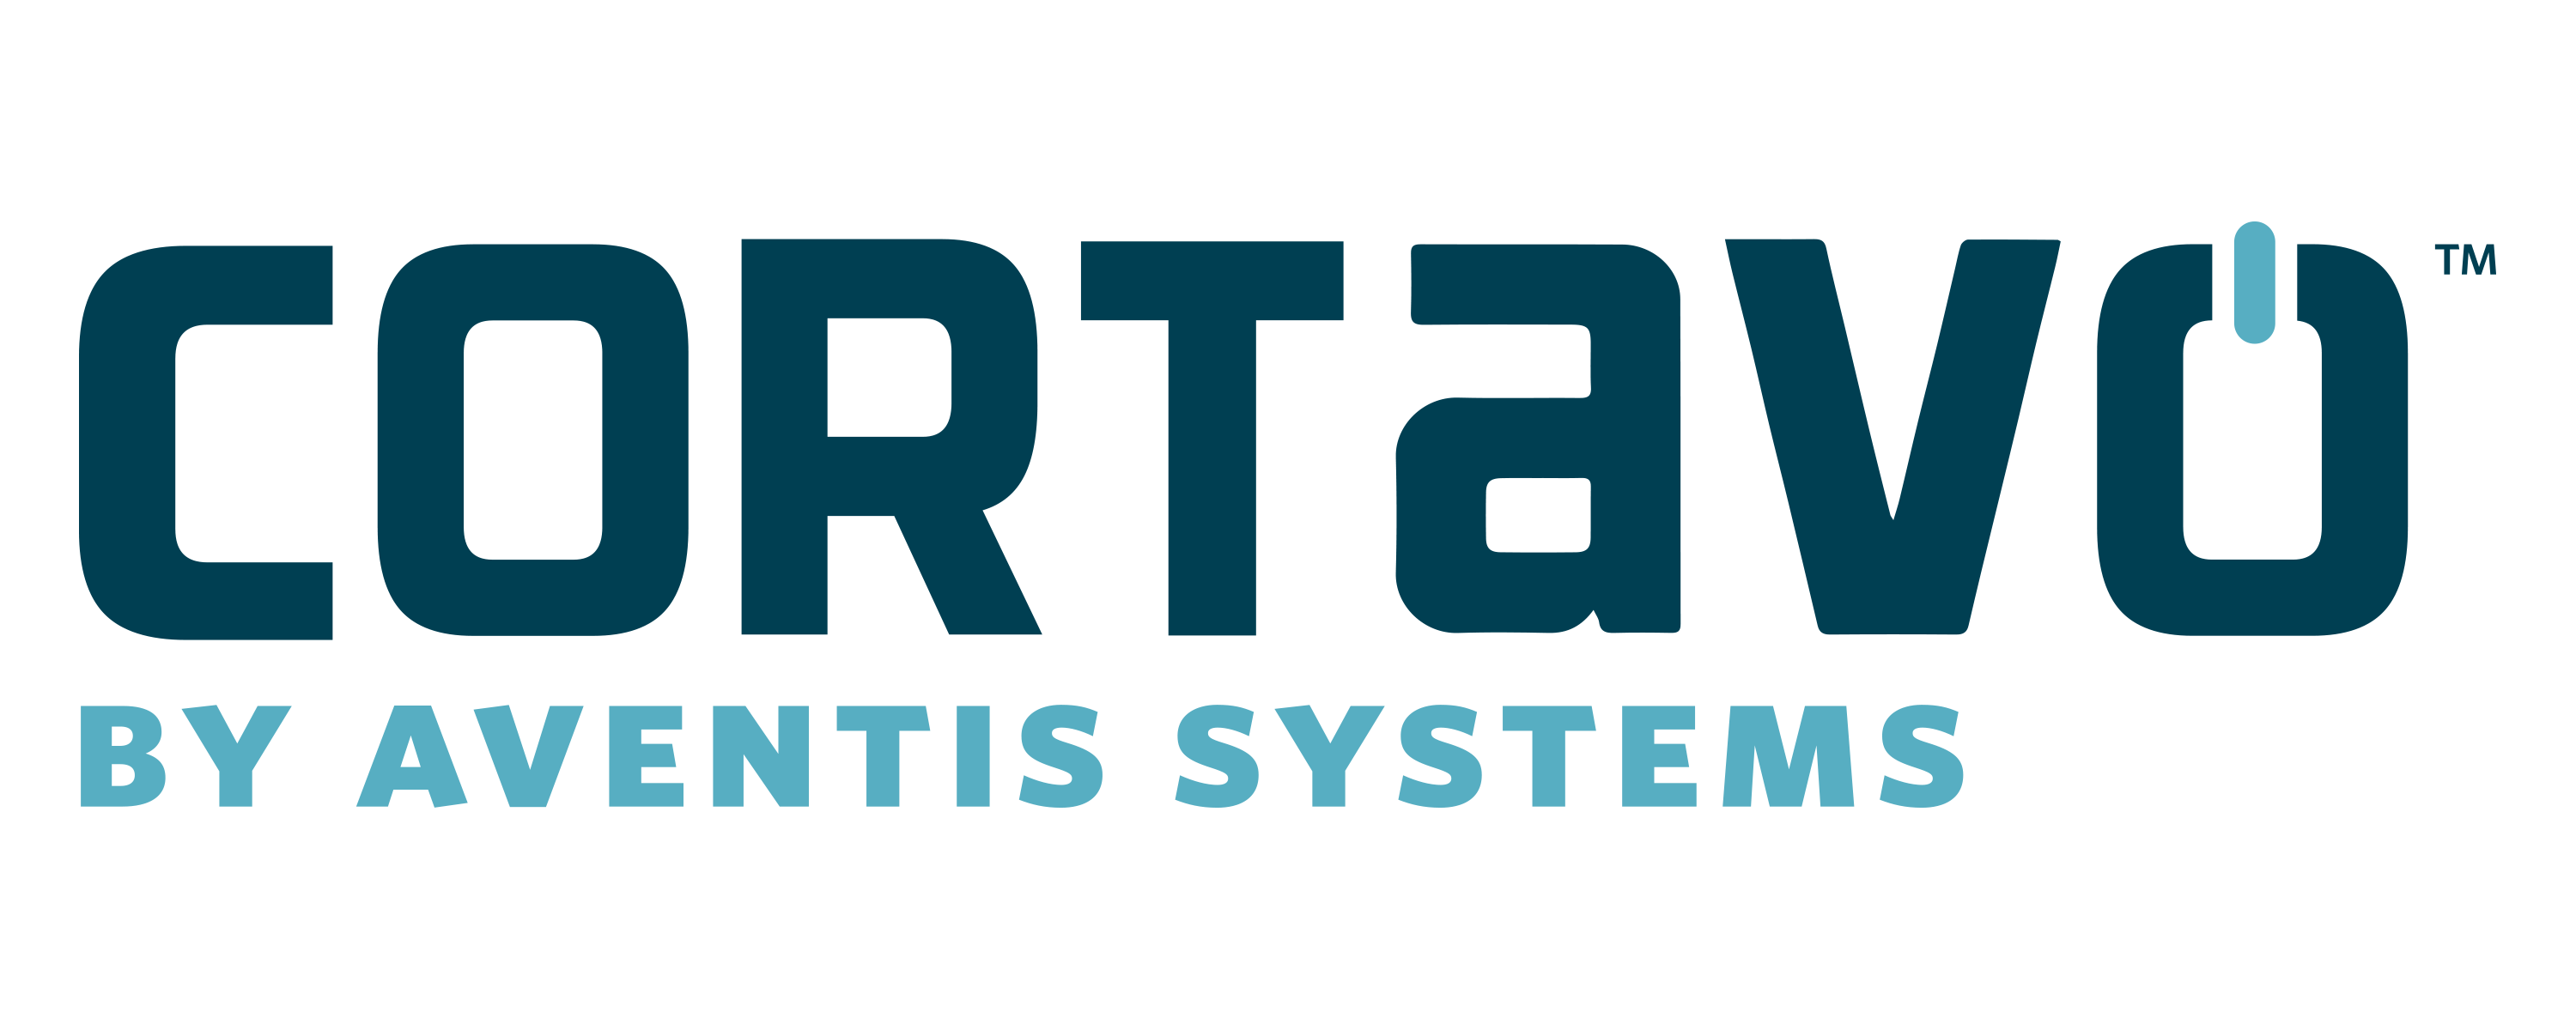 Cortavo by Aventis Systems